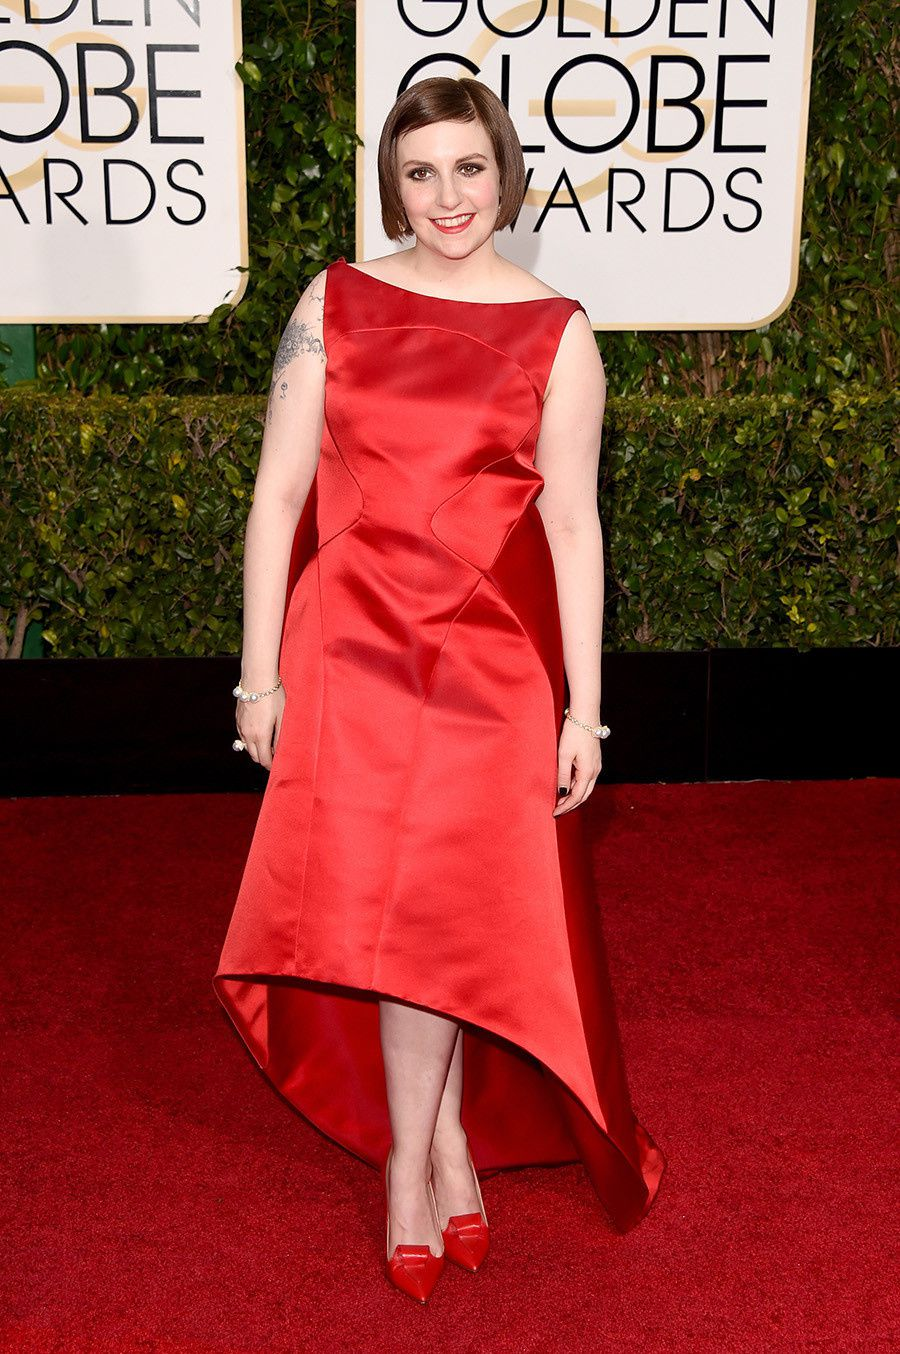 Lena Dunham - © Getty